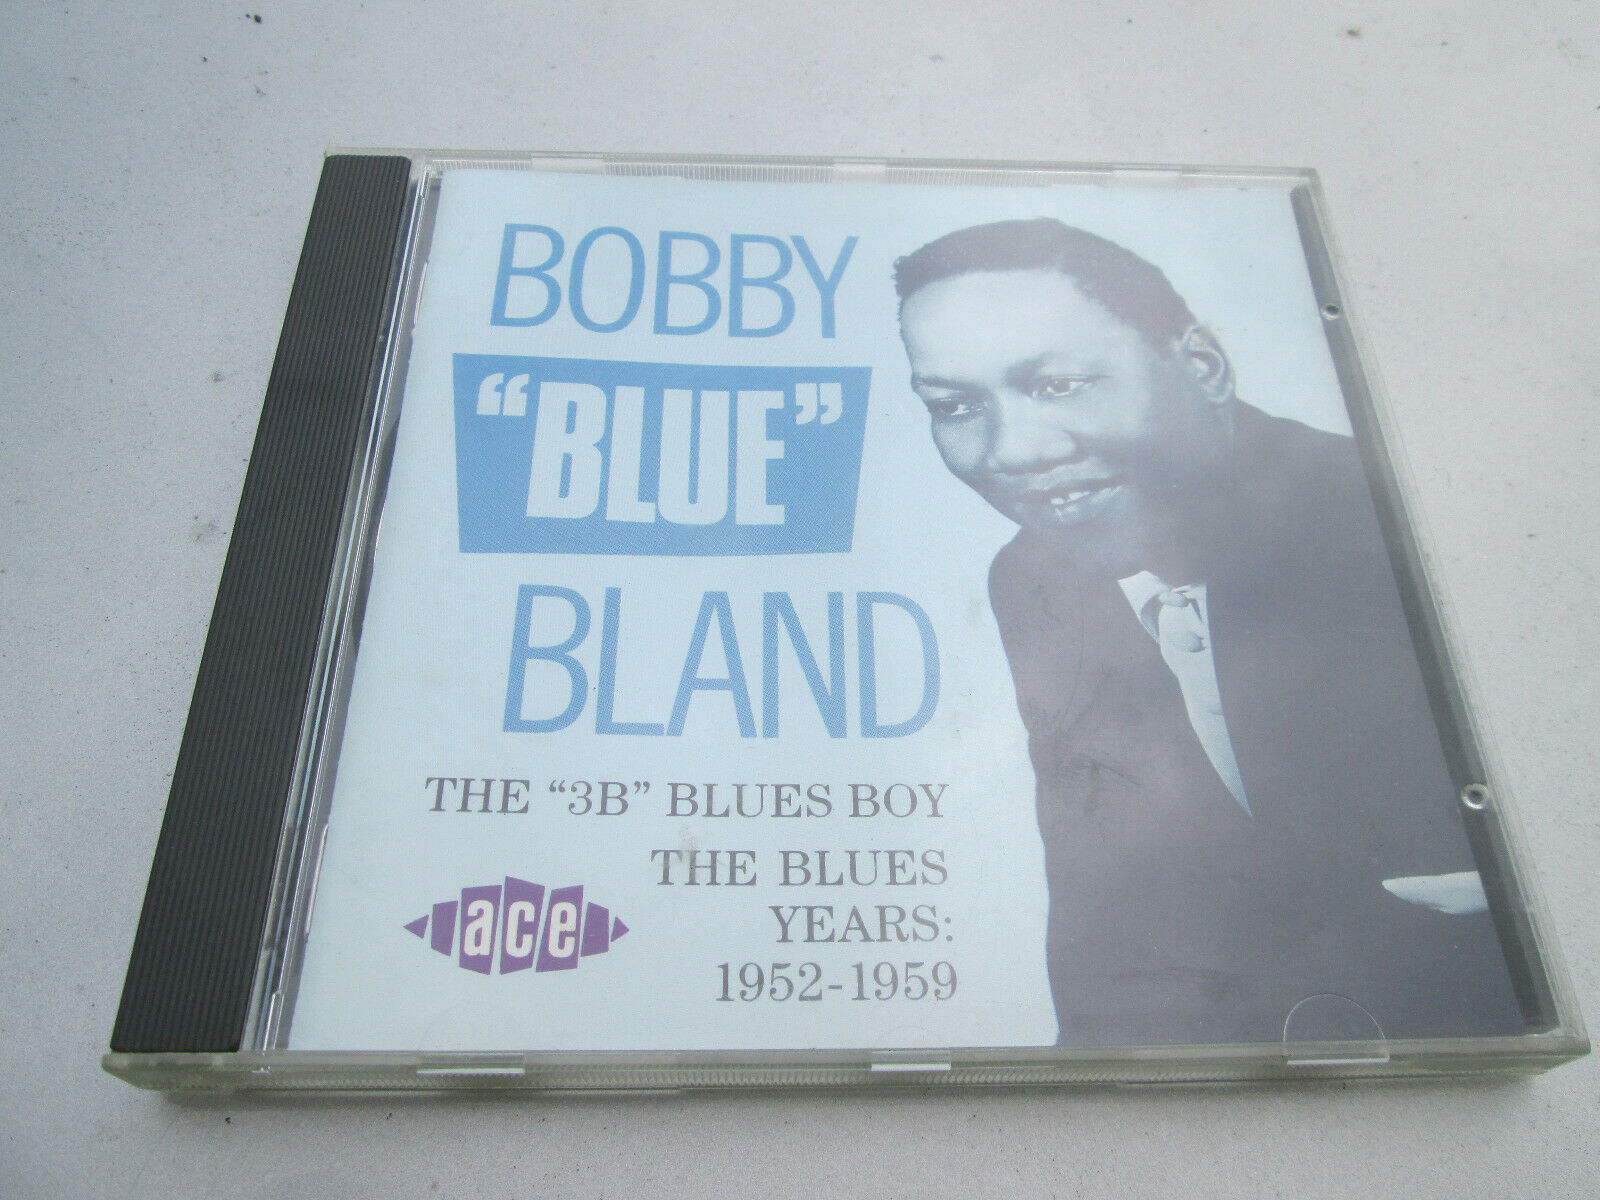 BOBBY BLUE BLAND BEST 52-59 BLUES CD - NICE CONDITION  - $16.99